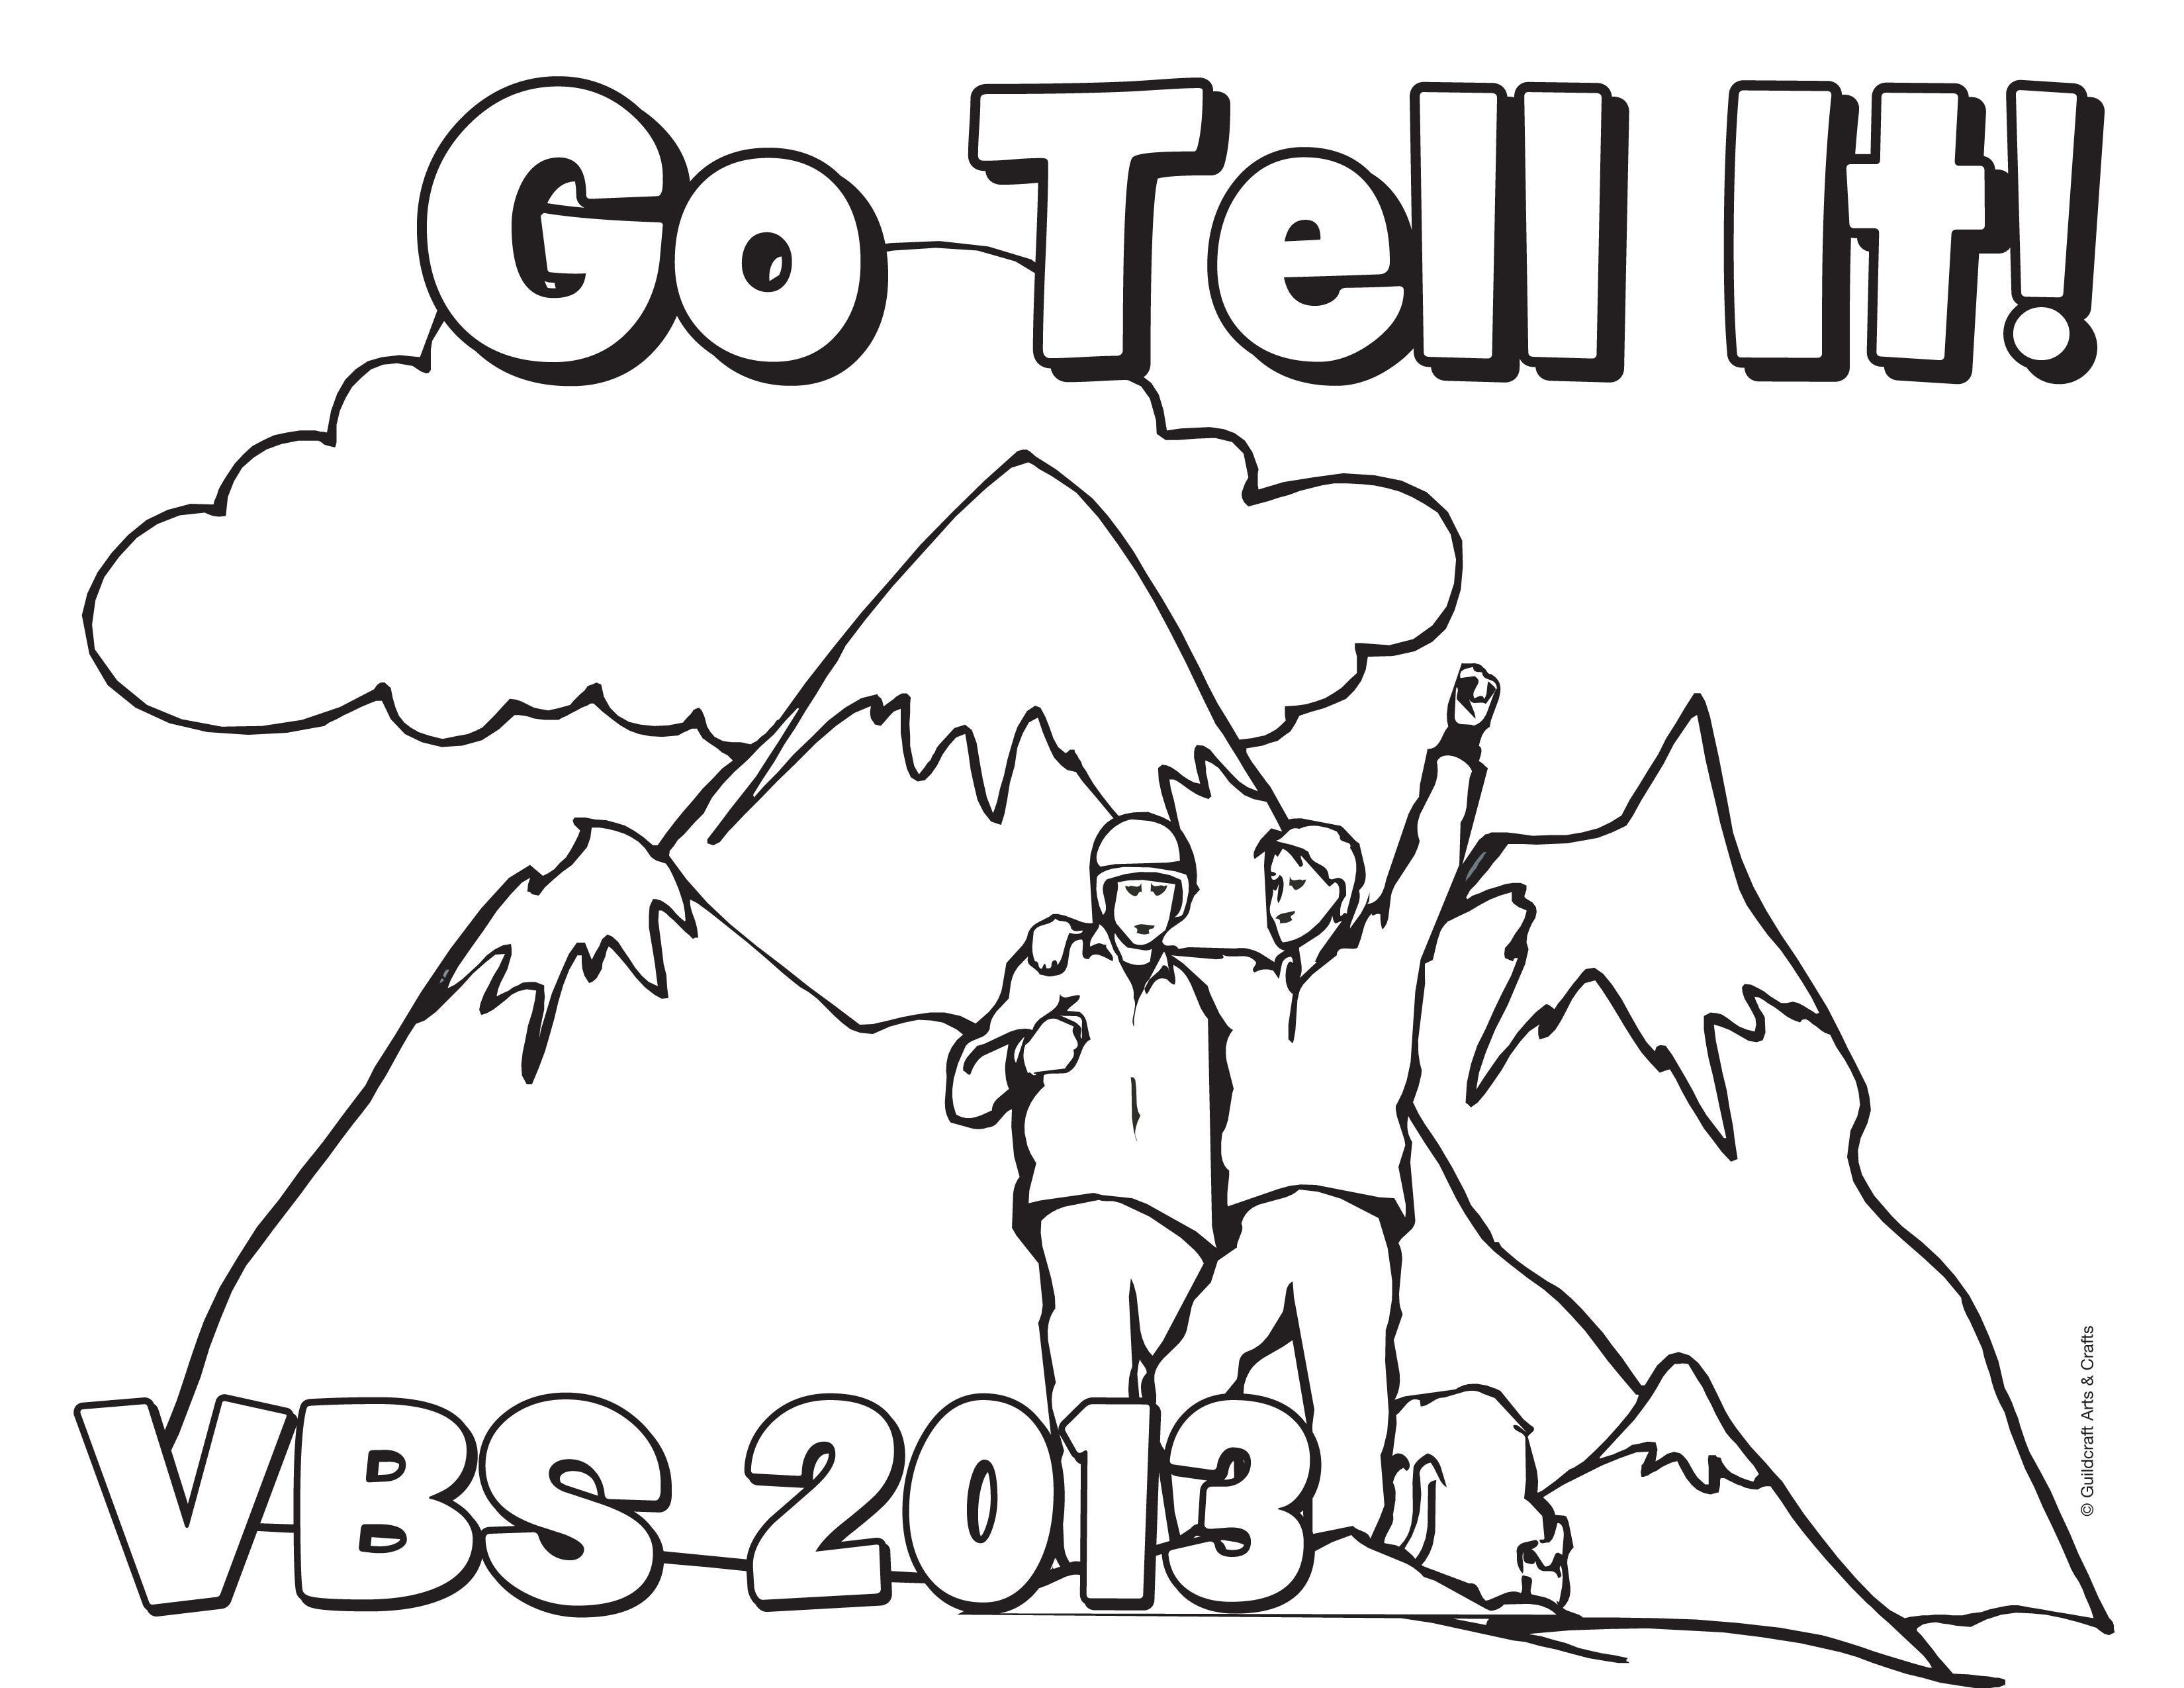 Free Go Tell It VBS 2013 Coloring Sheet From Guildcraft Arts Crafts